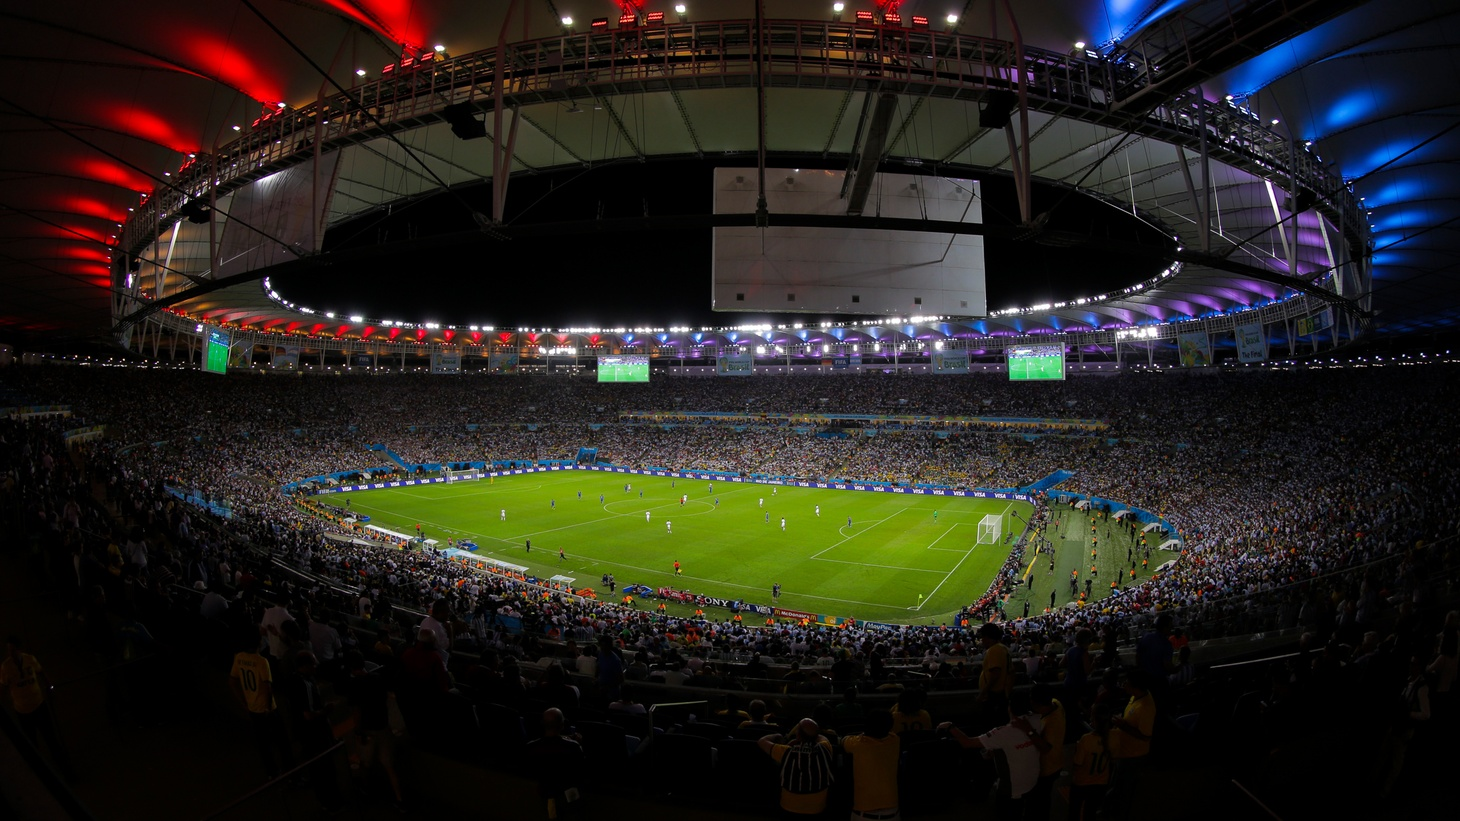 Brazil hosted a month-long festival of great soccer, and global TV ratings went through the roof. Now it has to cope with the aftermath. We'll look at the impact on Brazil—and on FIFA, soccer's governing body, where reports of corruption and bribery are not going away.